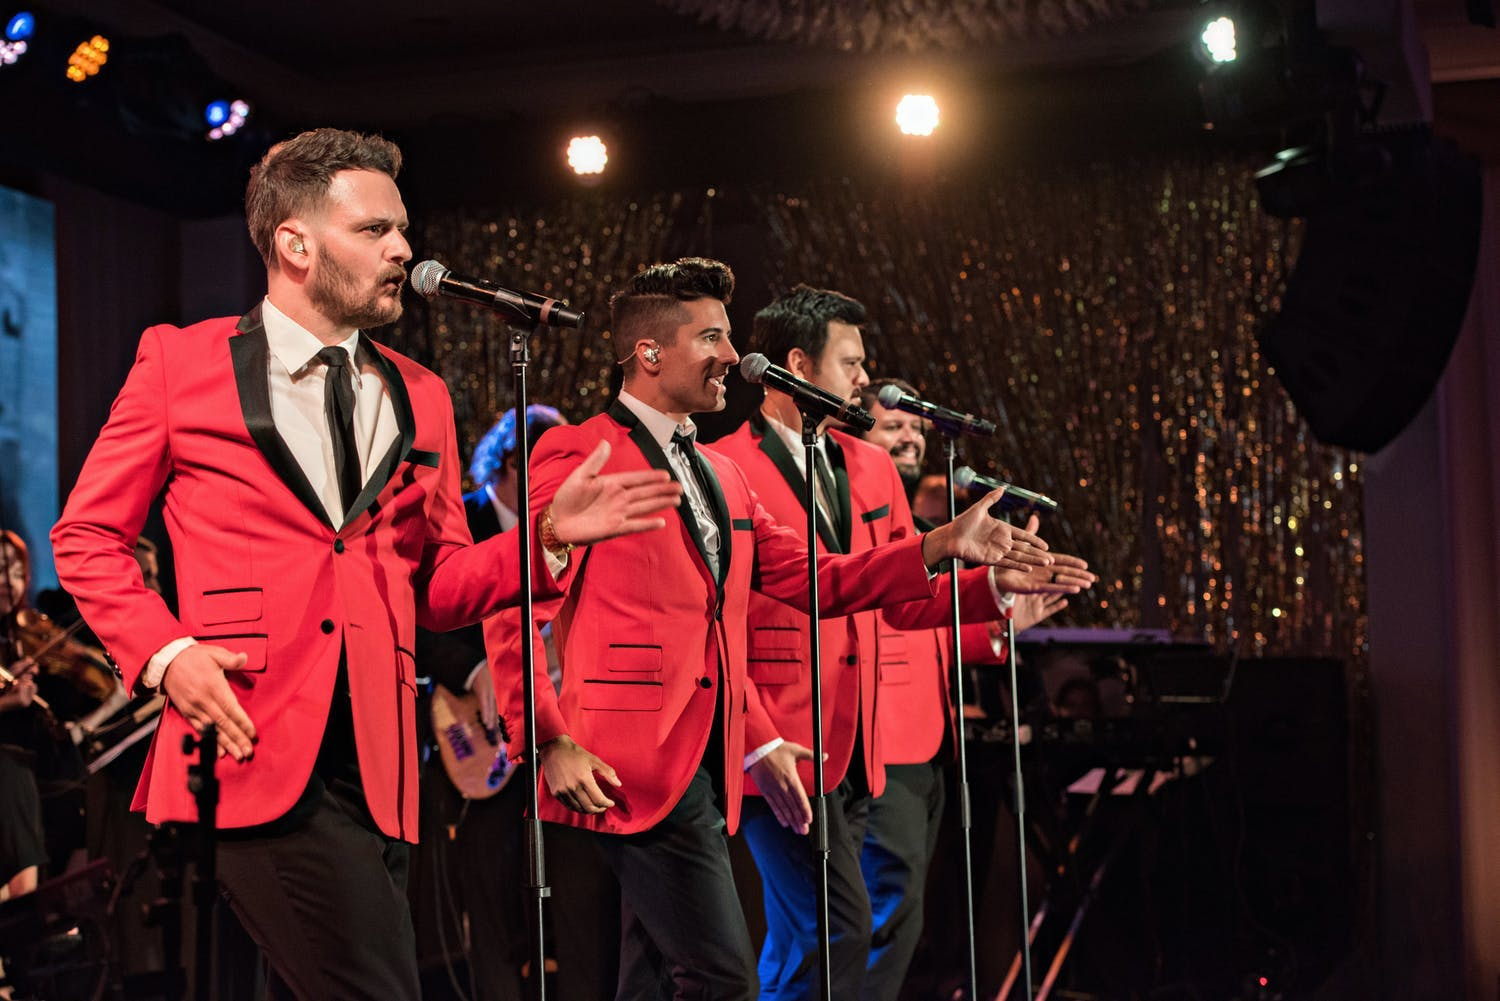 West Coast Music performs at 50th-Anniversary Celebration | PartySlate